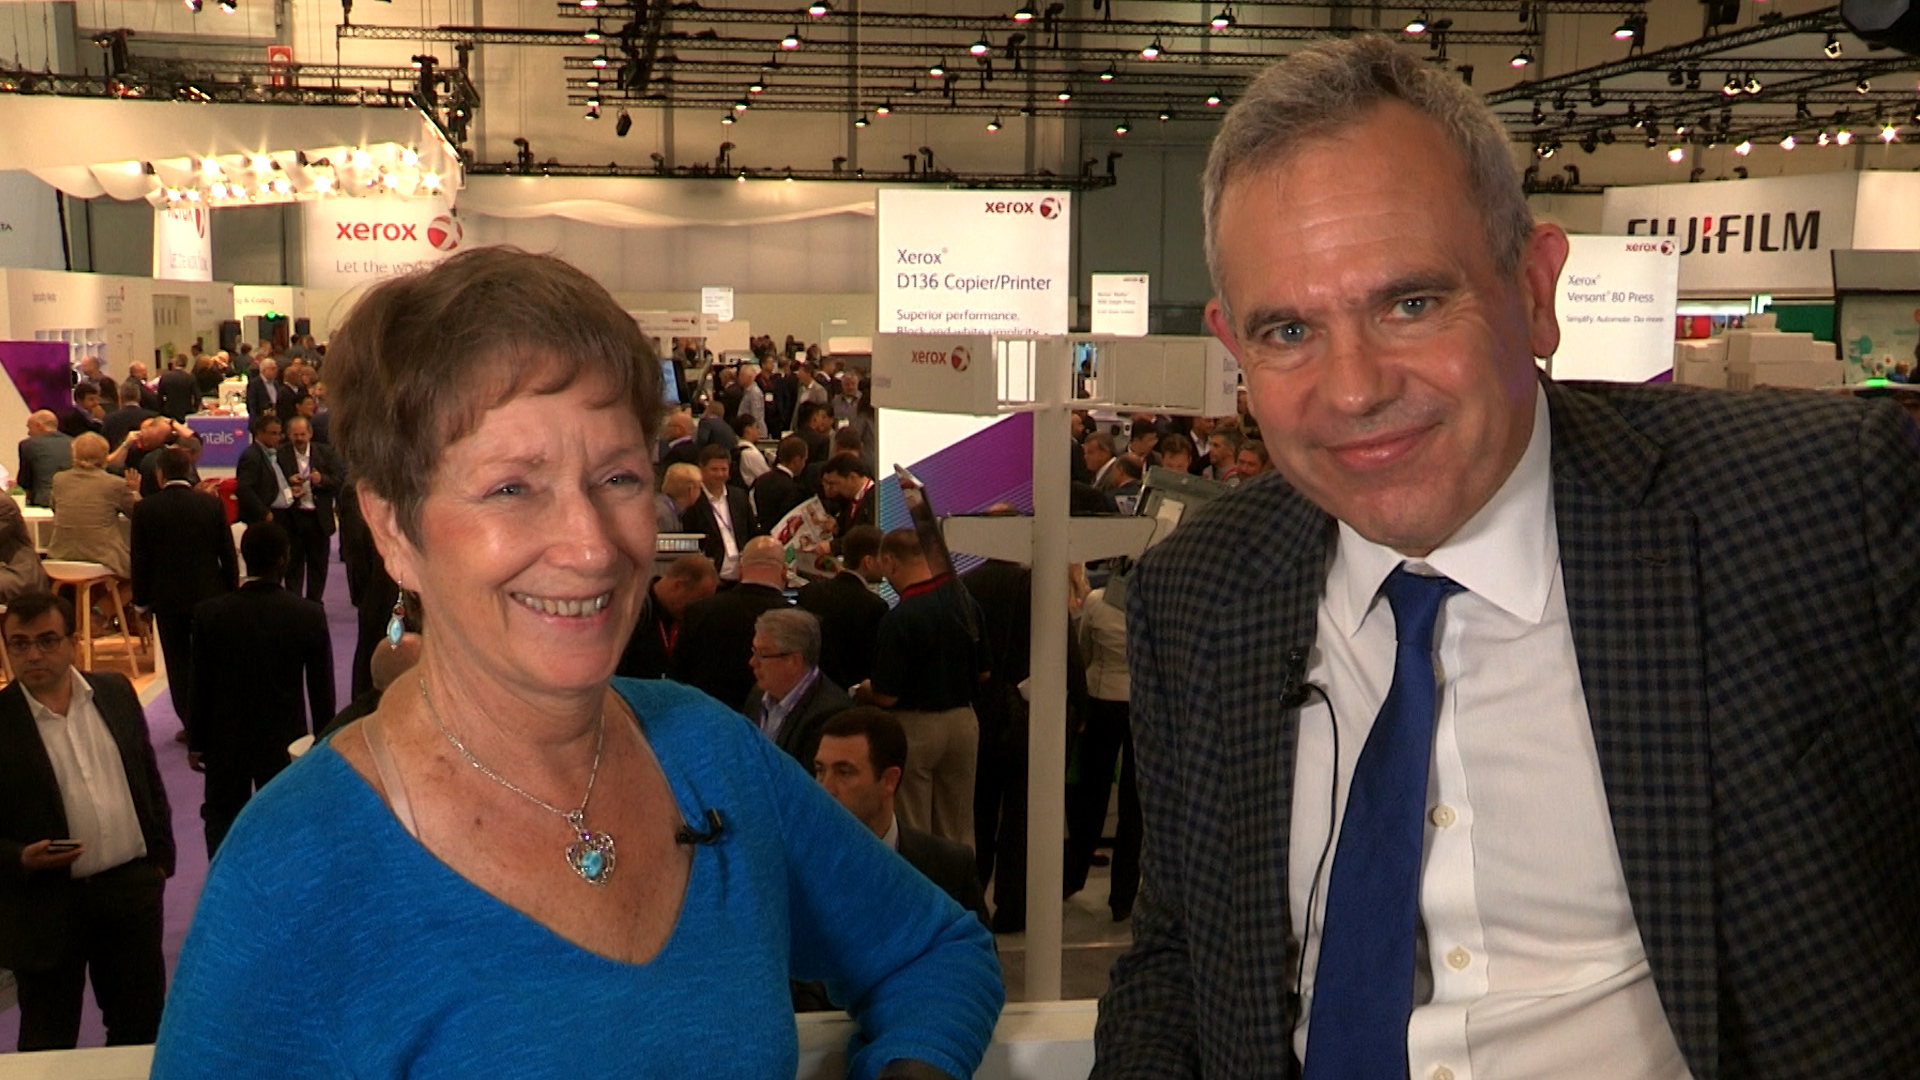 Video preview: Xerox's Robert Stabler Shares the Xerox Experience at drupa